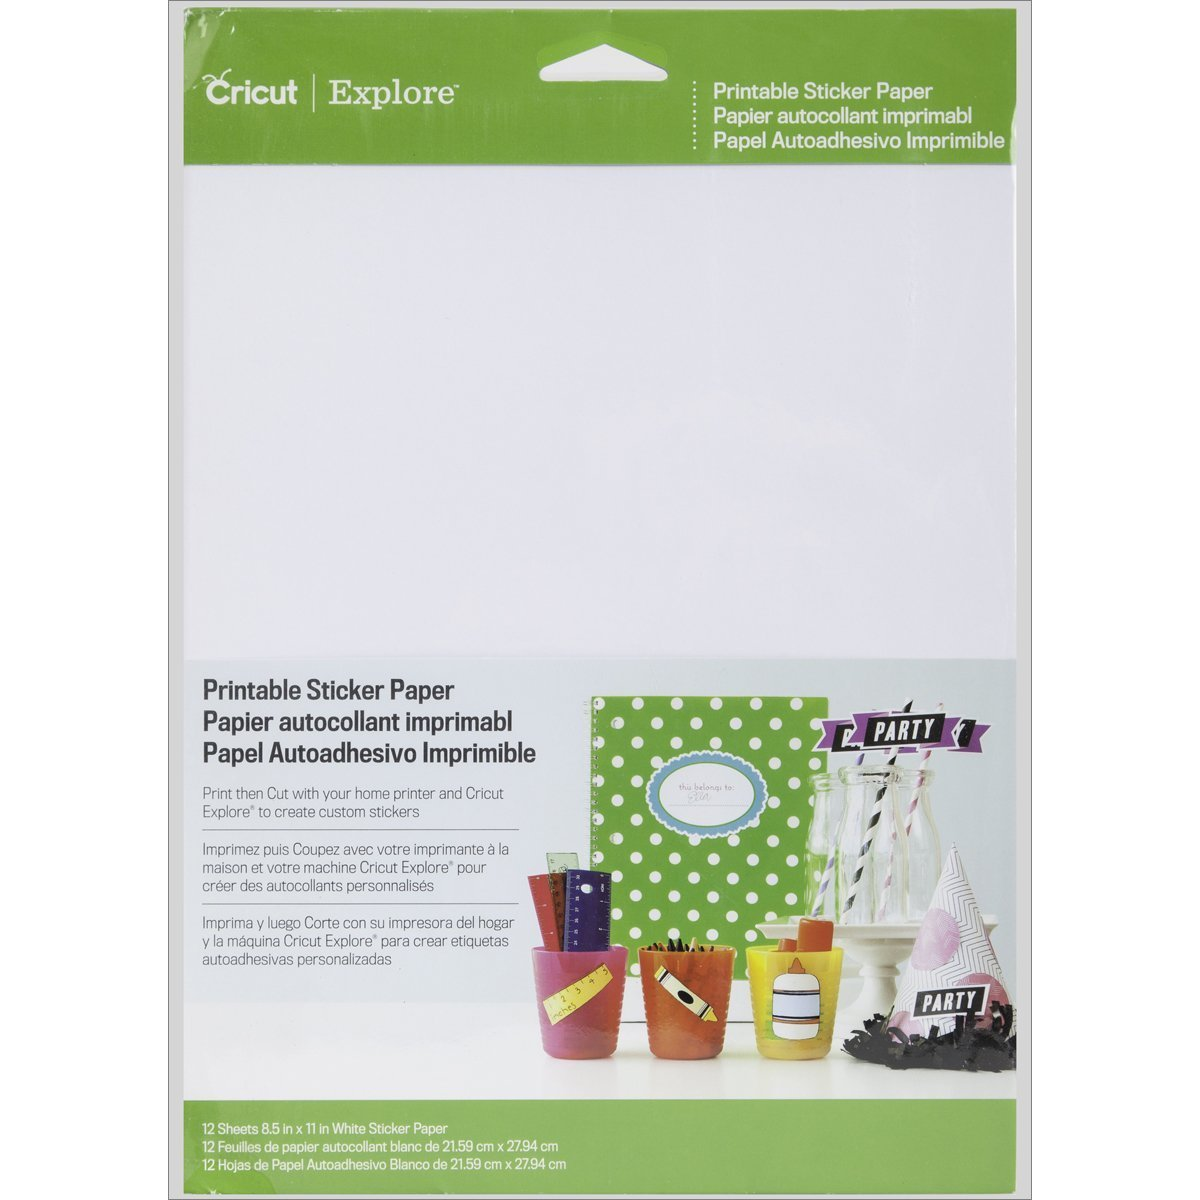 Cricut Printable Sticker Paper for Scrapbooking 3 Pack